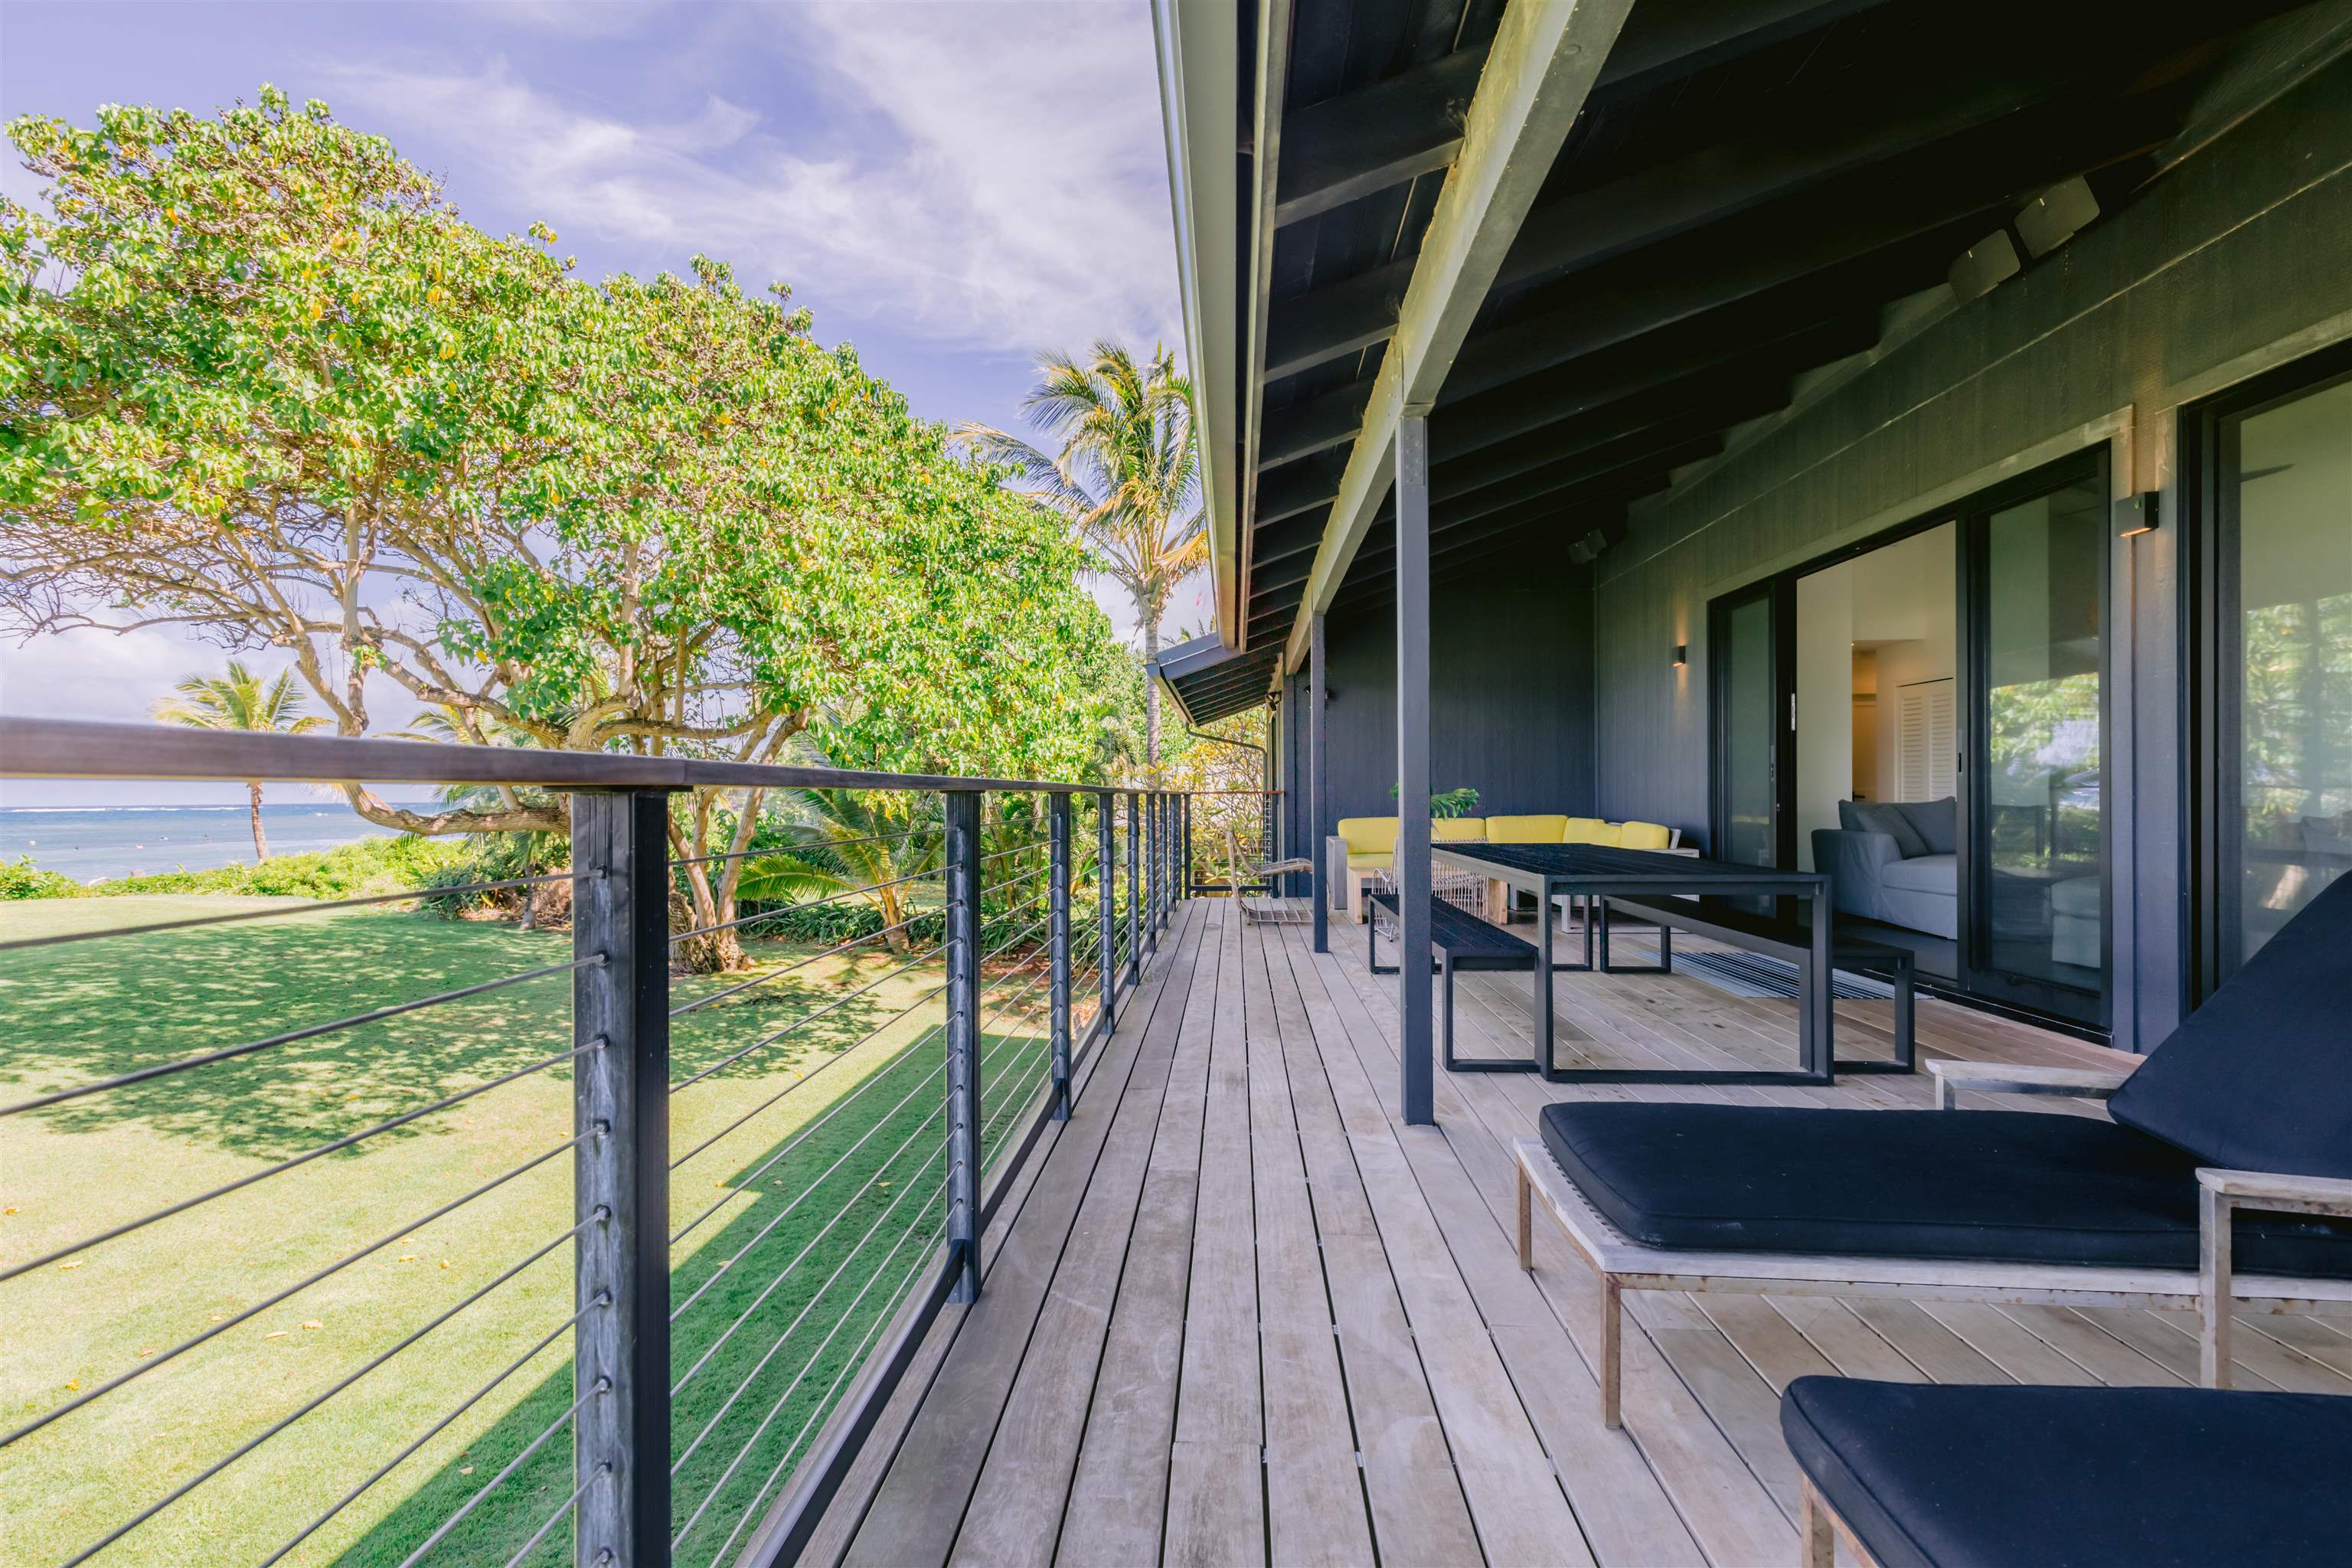 Located in the timeless beachfront community of Paia sits a modern, stylish private beach home. Poised on a lush grassy knoll with 170 feet of sandy beachfront, enter through a private gate to this .67 of an acre compound. Once inside, your world shifts and slows down, as the transition to beach life begins. The first home is a classic iconic over 1,000sf cottage built-in 1910. The main home is modern, and a comfortable 4,300sf beach home with all amenities. Sleep in while you gaze from your bedroom across your compound to the turquoise blue ocean. Enjoy an easy 3 mile stroll of beach walks right from your front door.  The entire compound is well set up for indoor-outdoor living amenities  The covered lanai has sweeping Pacific Ocean views and is complemented by modern and cozy living areas, including a chef-style kitchen, clean white marble bathrooms and 3 car garage. Extra space is intelligently designed into multiple areas offering plenty of opportunities for weekend gatherings, ohana, beach time, and beautiful sunsets. Walk into town for over 13 restaurants, mana foods, and 30 boutiques. This is a rare opportunity to be right in the heart of Paia and on a world-class white sand beach. Beautifully furnished totally turnkey just bring your bathing suit and surfboard.  Owner interested in selling a 50 percent interest where both owners would have 6 months each.